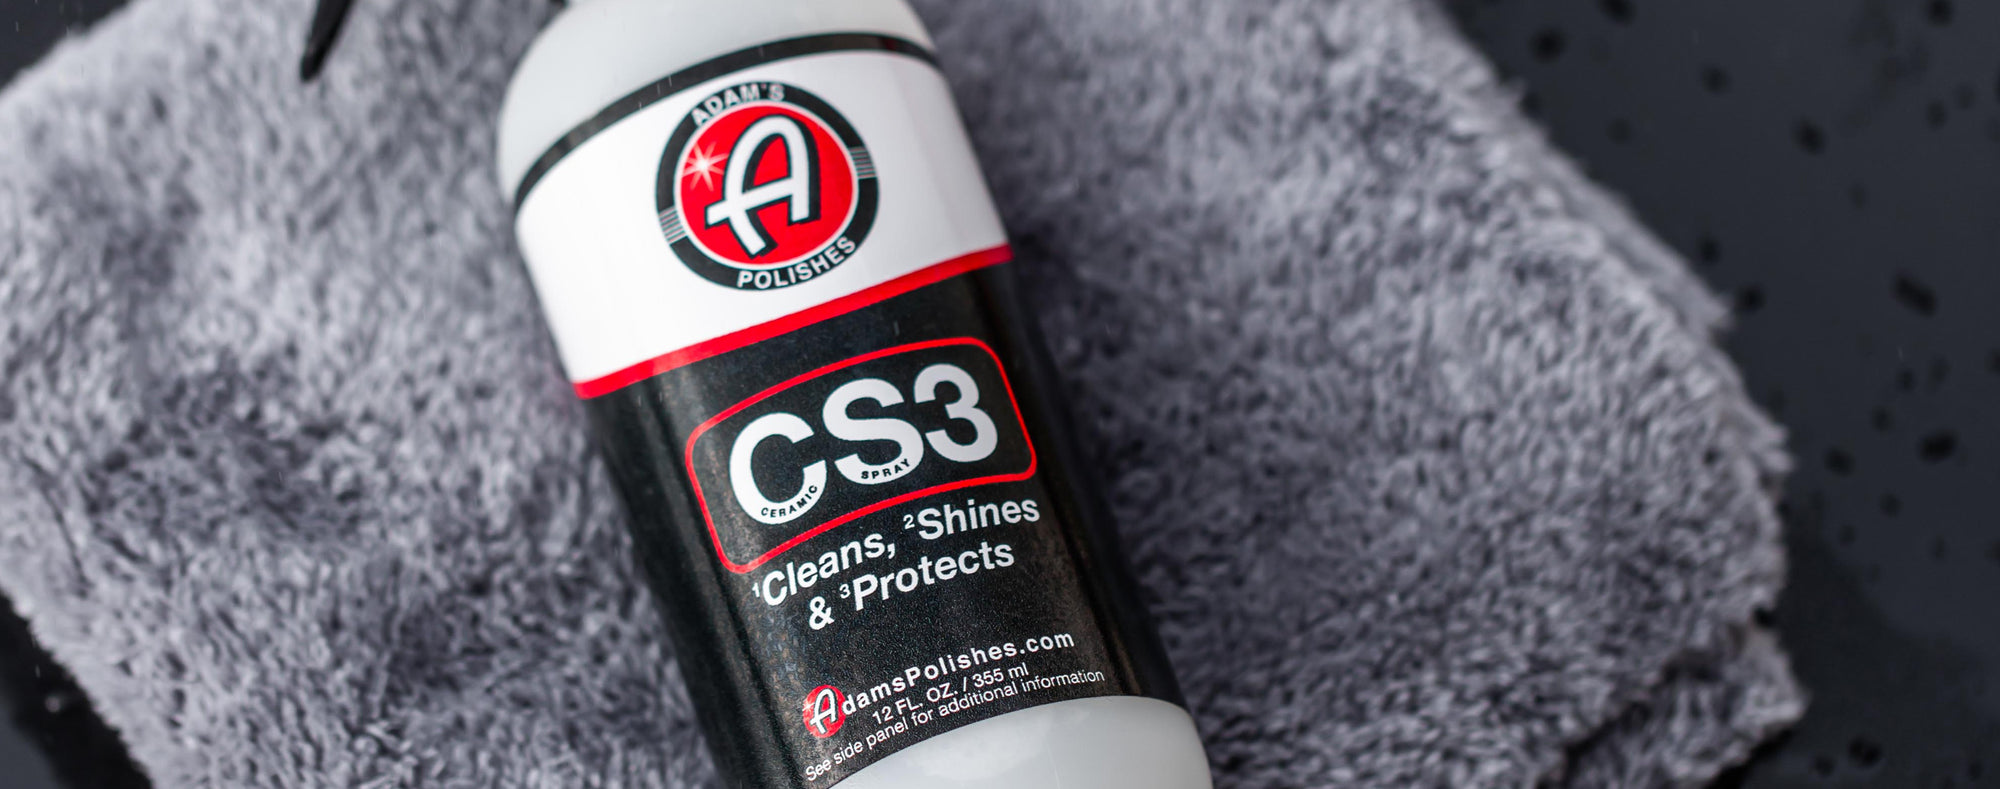 Adam's CS3 Versus Ceramic Spray Coating